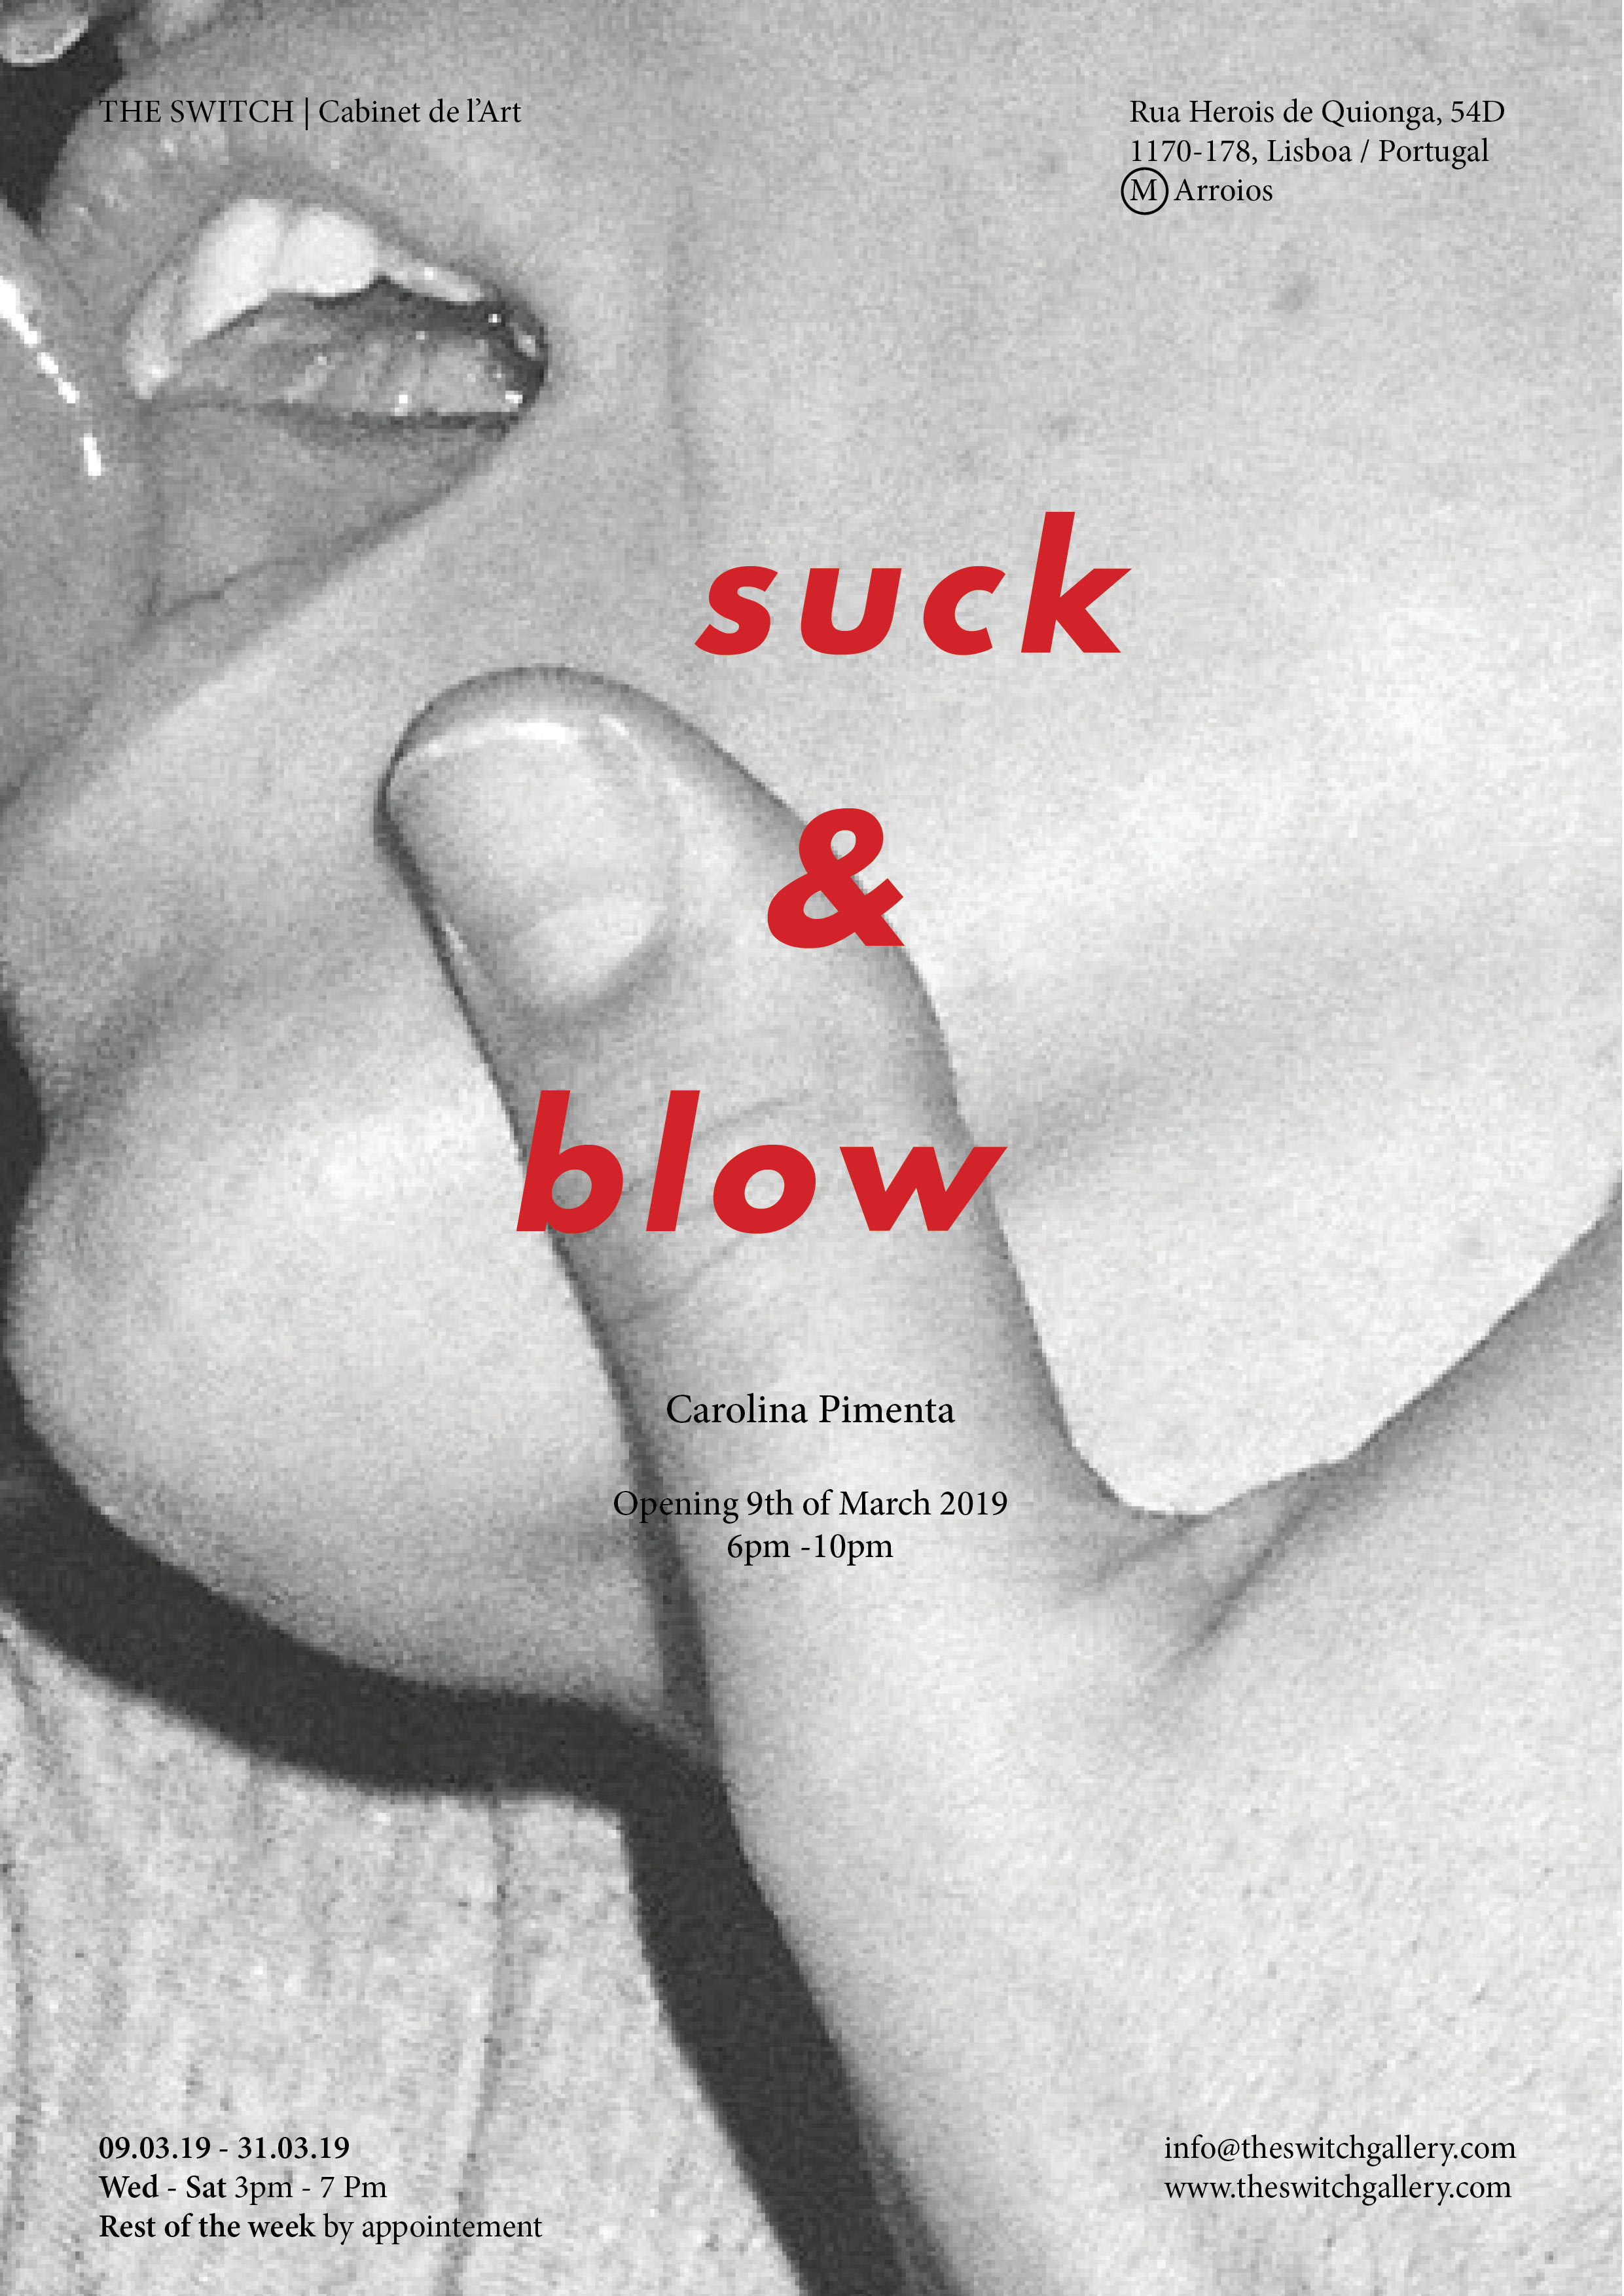 Suck & Blow,   The Switch , Lisbon, PT, 9 - 30 March 2019\  Opening of  Suck & Blow  exhibition at artist run gallery The Switch, March 9th at 6pm.